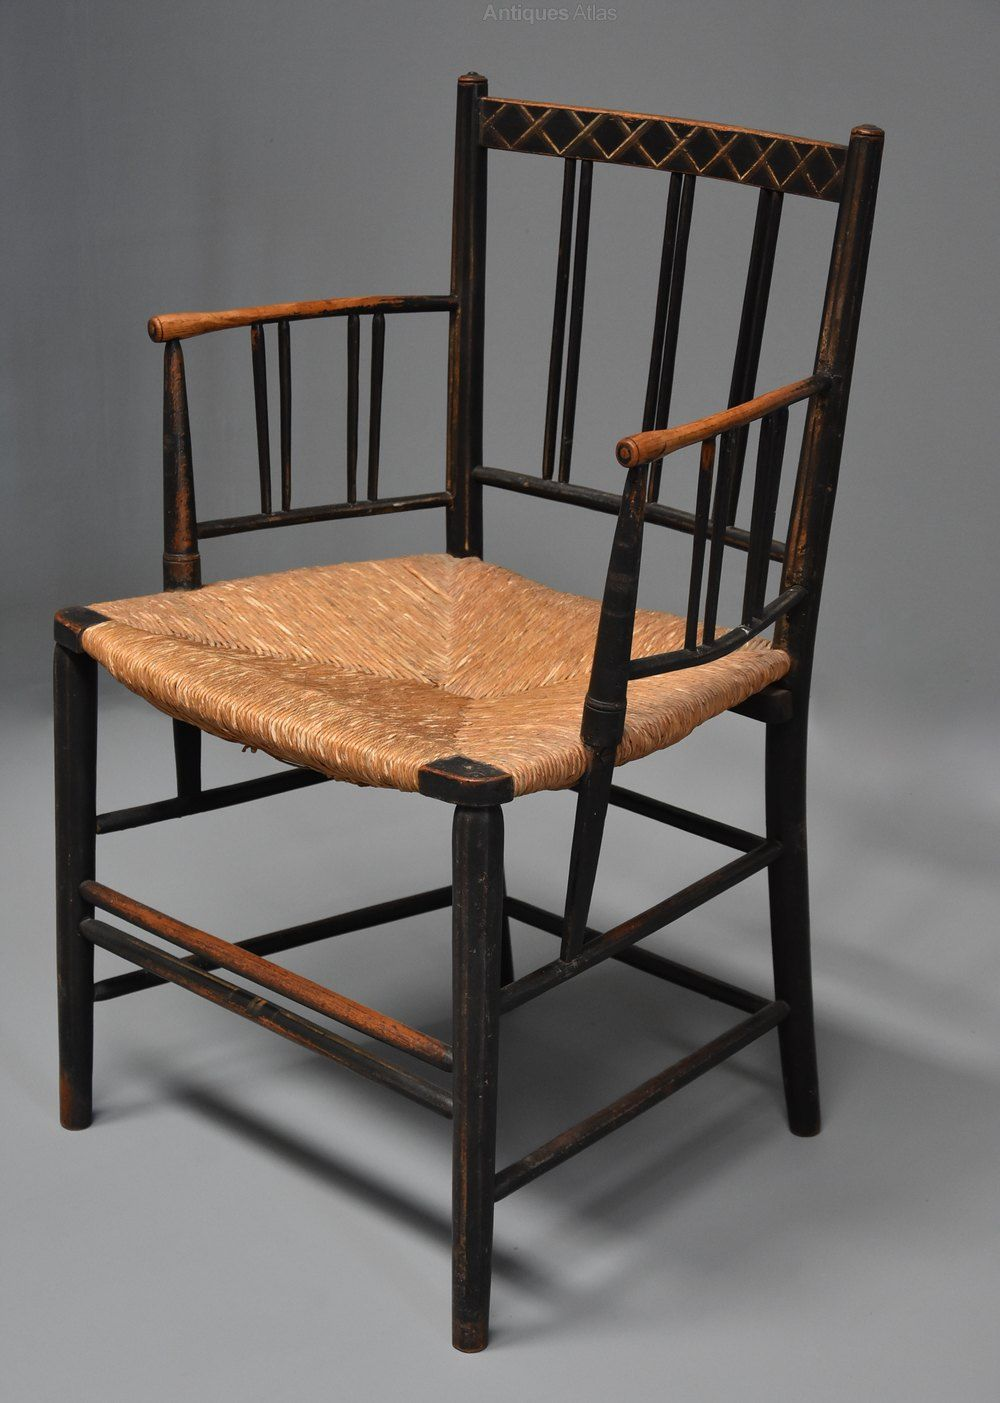 Late 19thc Rare Unusual Model Of A Sussex Chair Antiques Atlas In 2020 Chair Chair Design Antique Armchairs